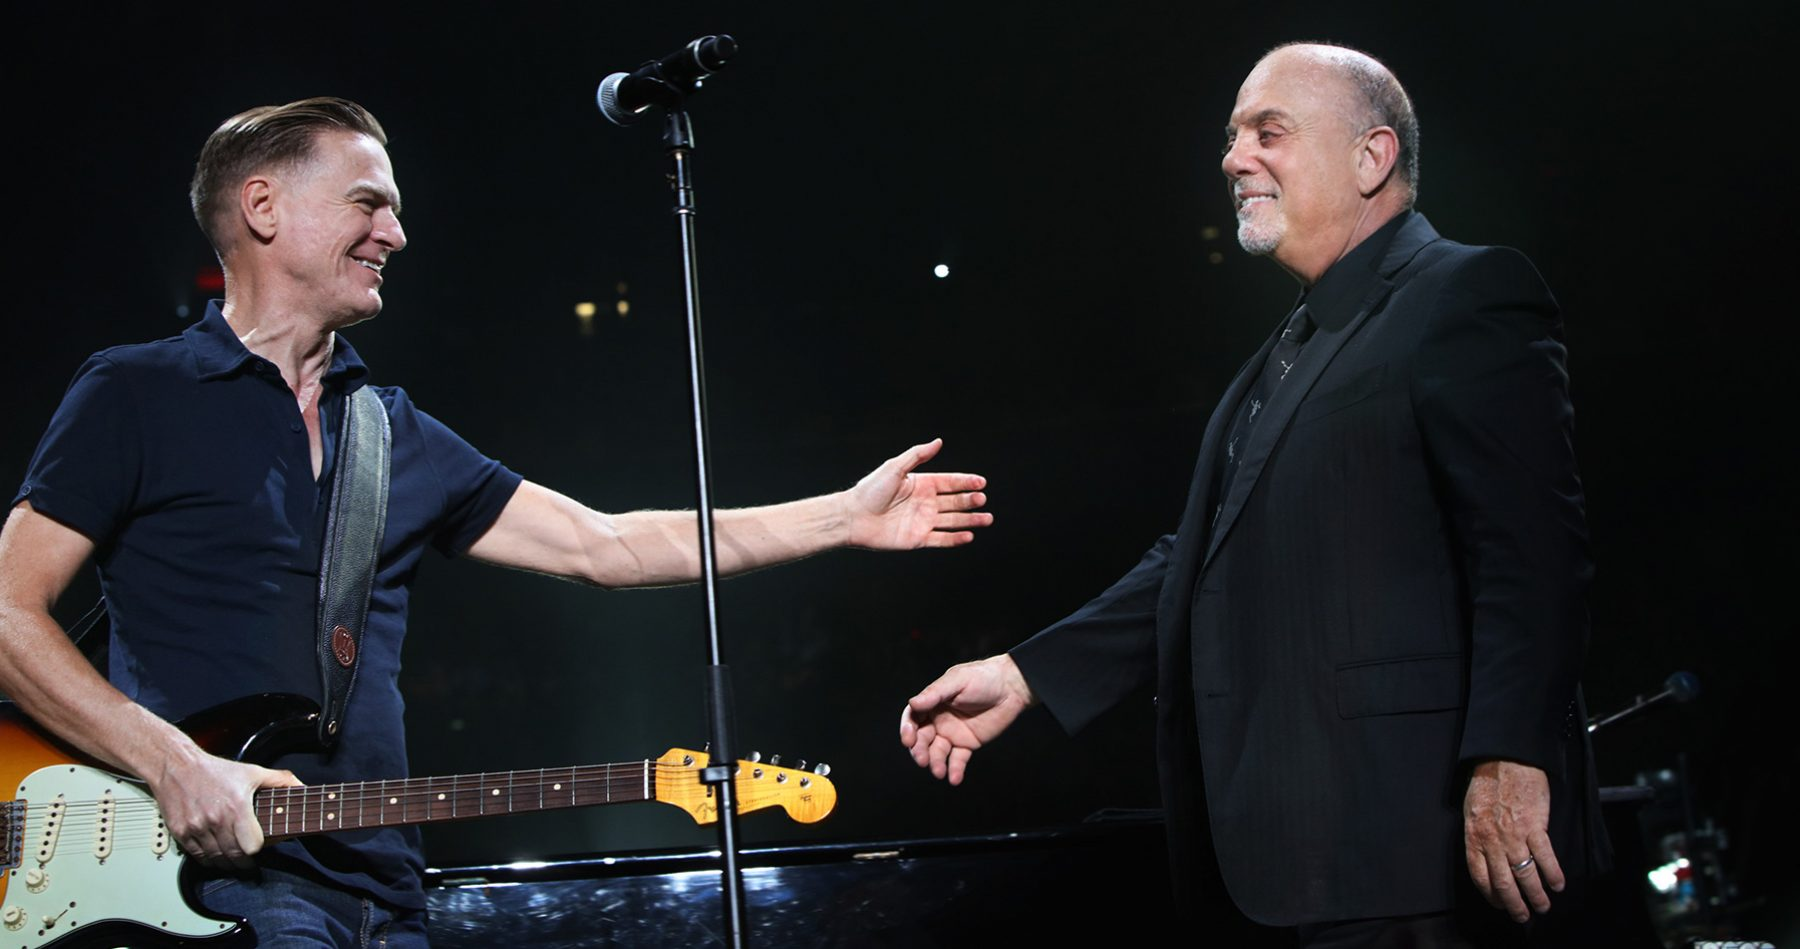 Billy Joel and Bryan Adams in concert Madison Square Garden New York, NY August 23, 2018